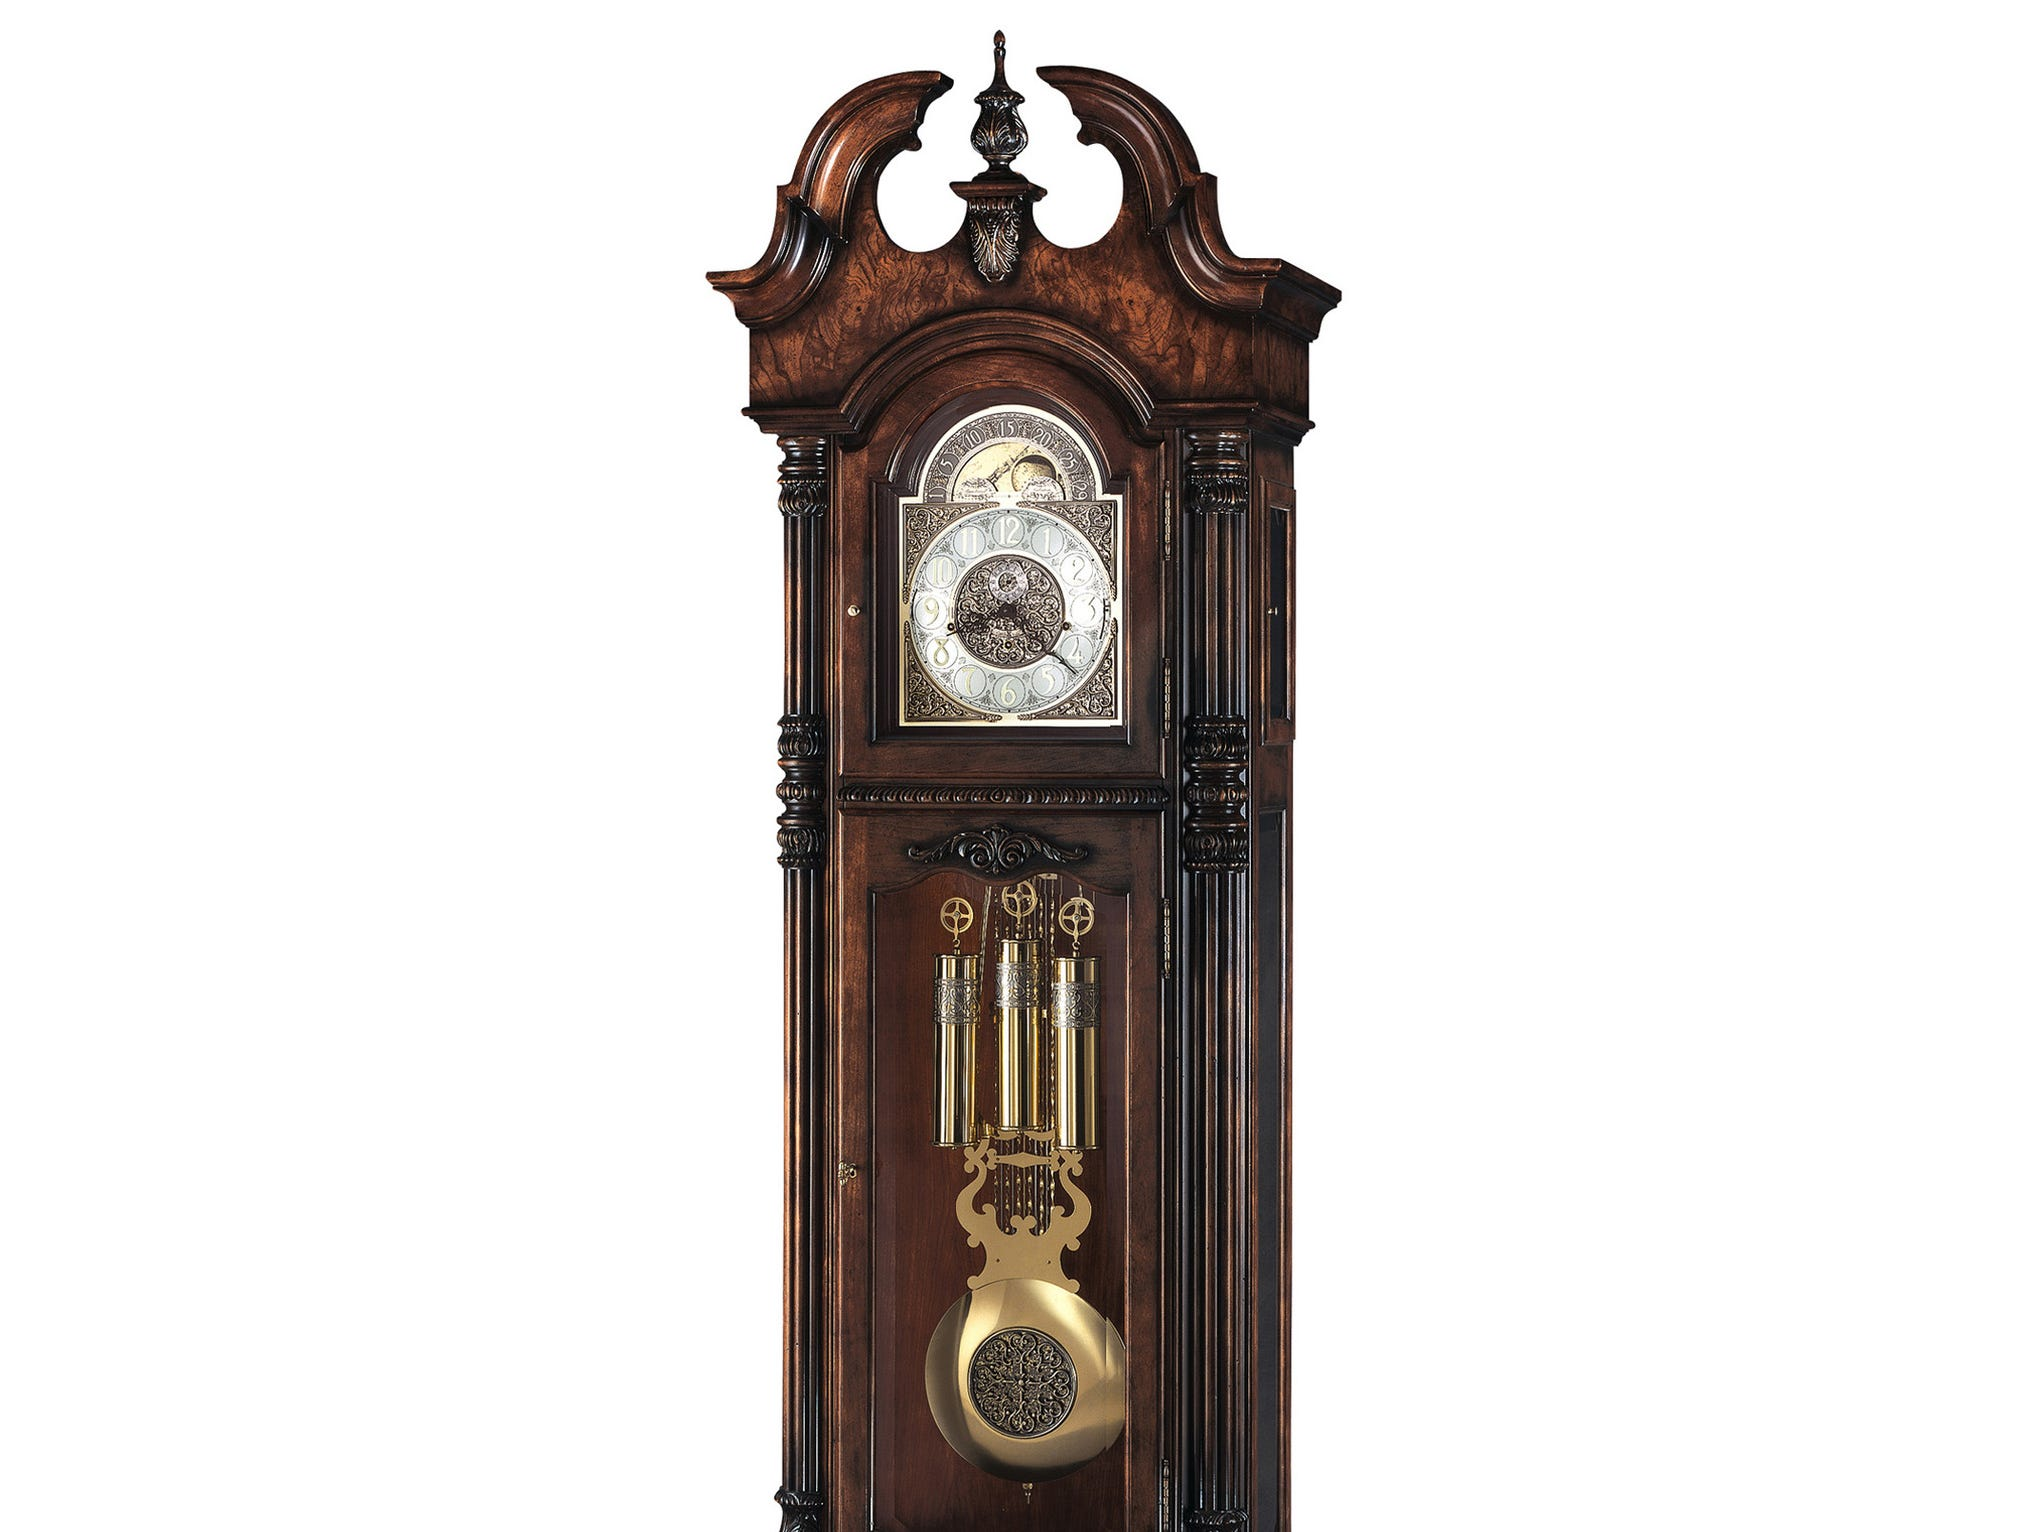 Classic, ornate grandfather clocks, such as this one sold at Hawkins Clock Center, are still in demand, though less so than in years past. They're pricey; this one sells for $11,129.